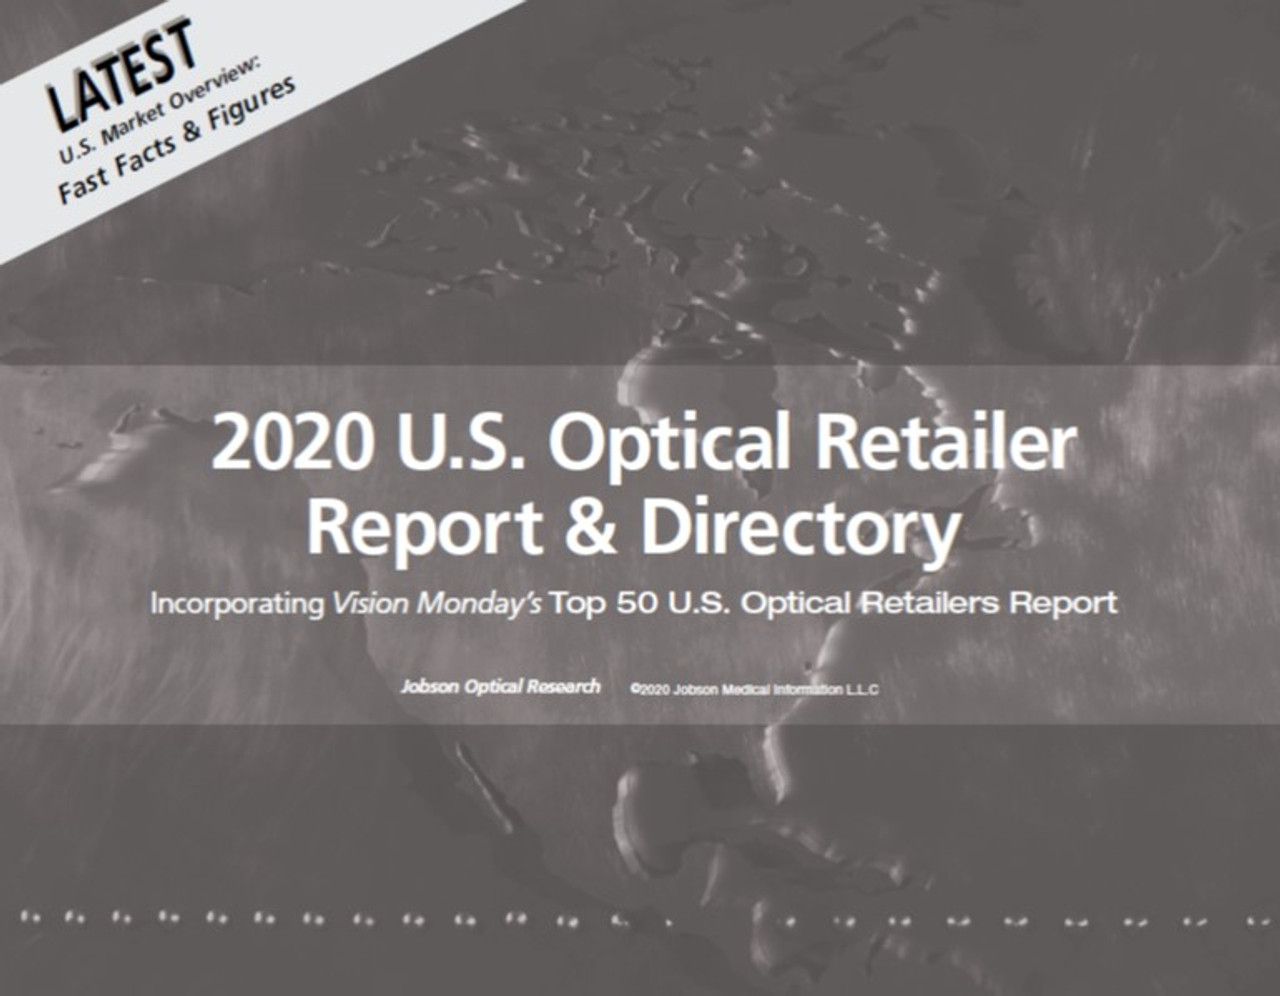 2020 U.S. Optical Retailer Report & Directory